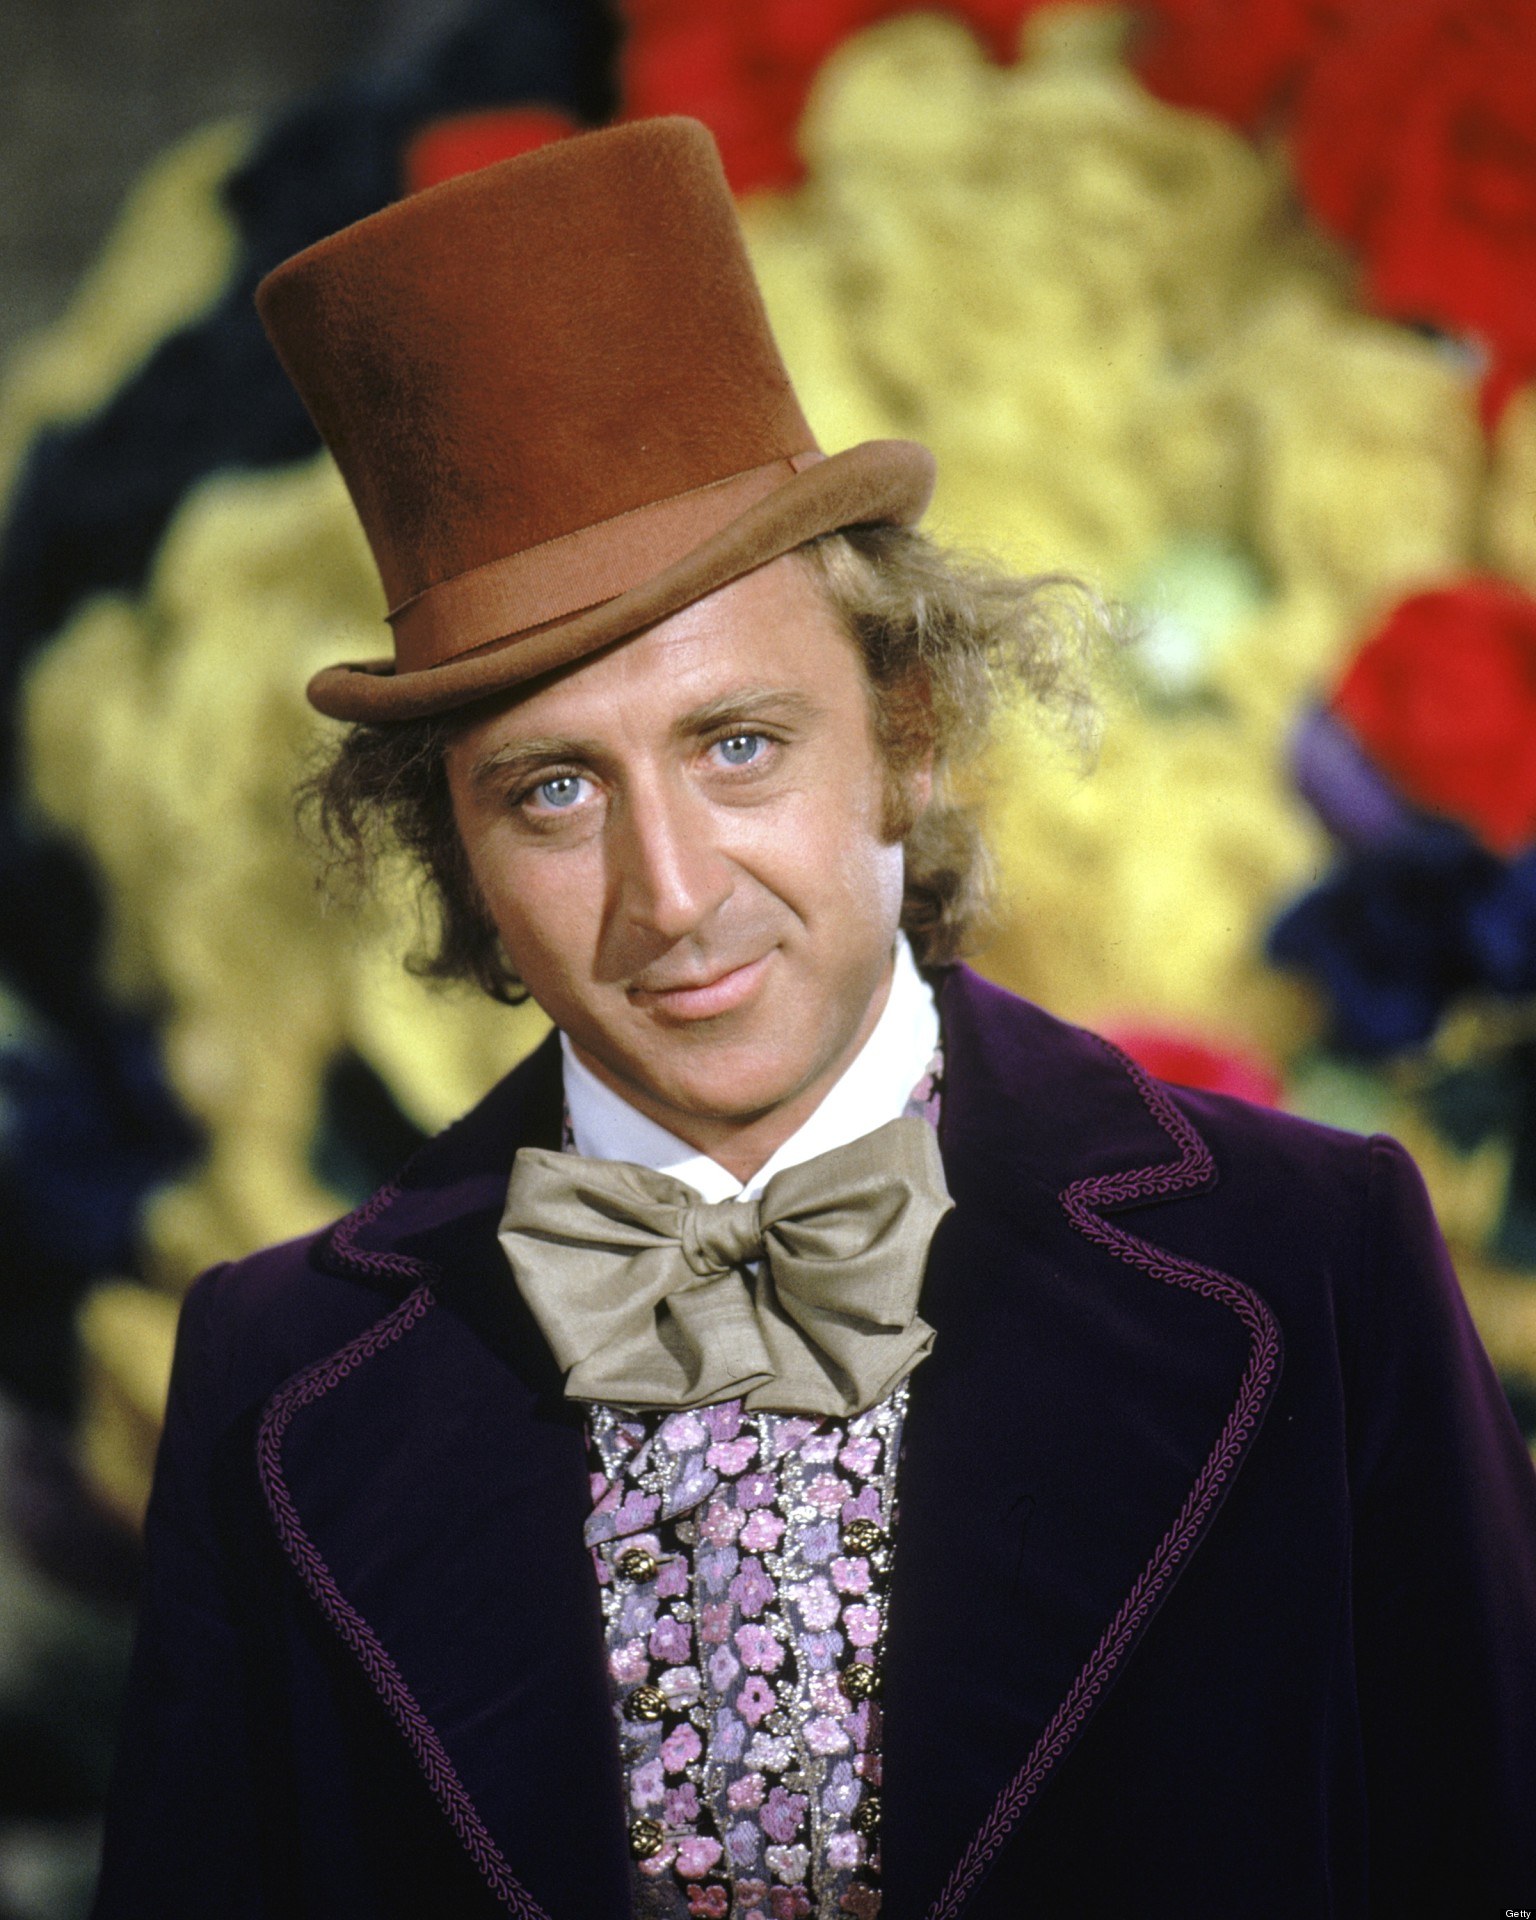 gene wilder charlie and the chocolate factory was an insult gene wilder charlie and the chocolate factory was an insult the huffington post